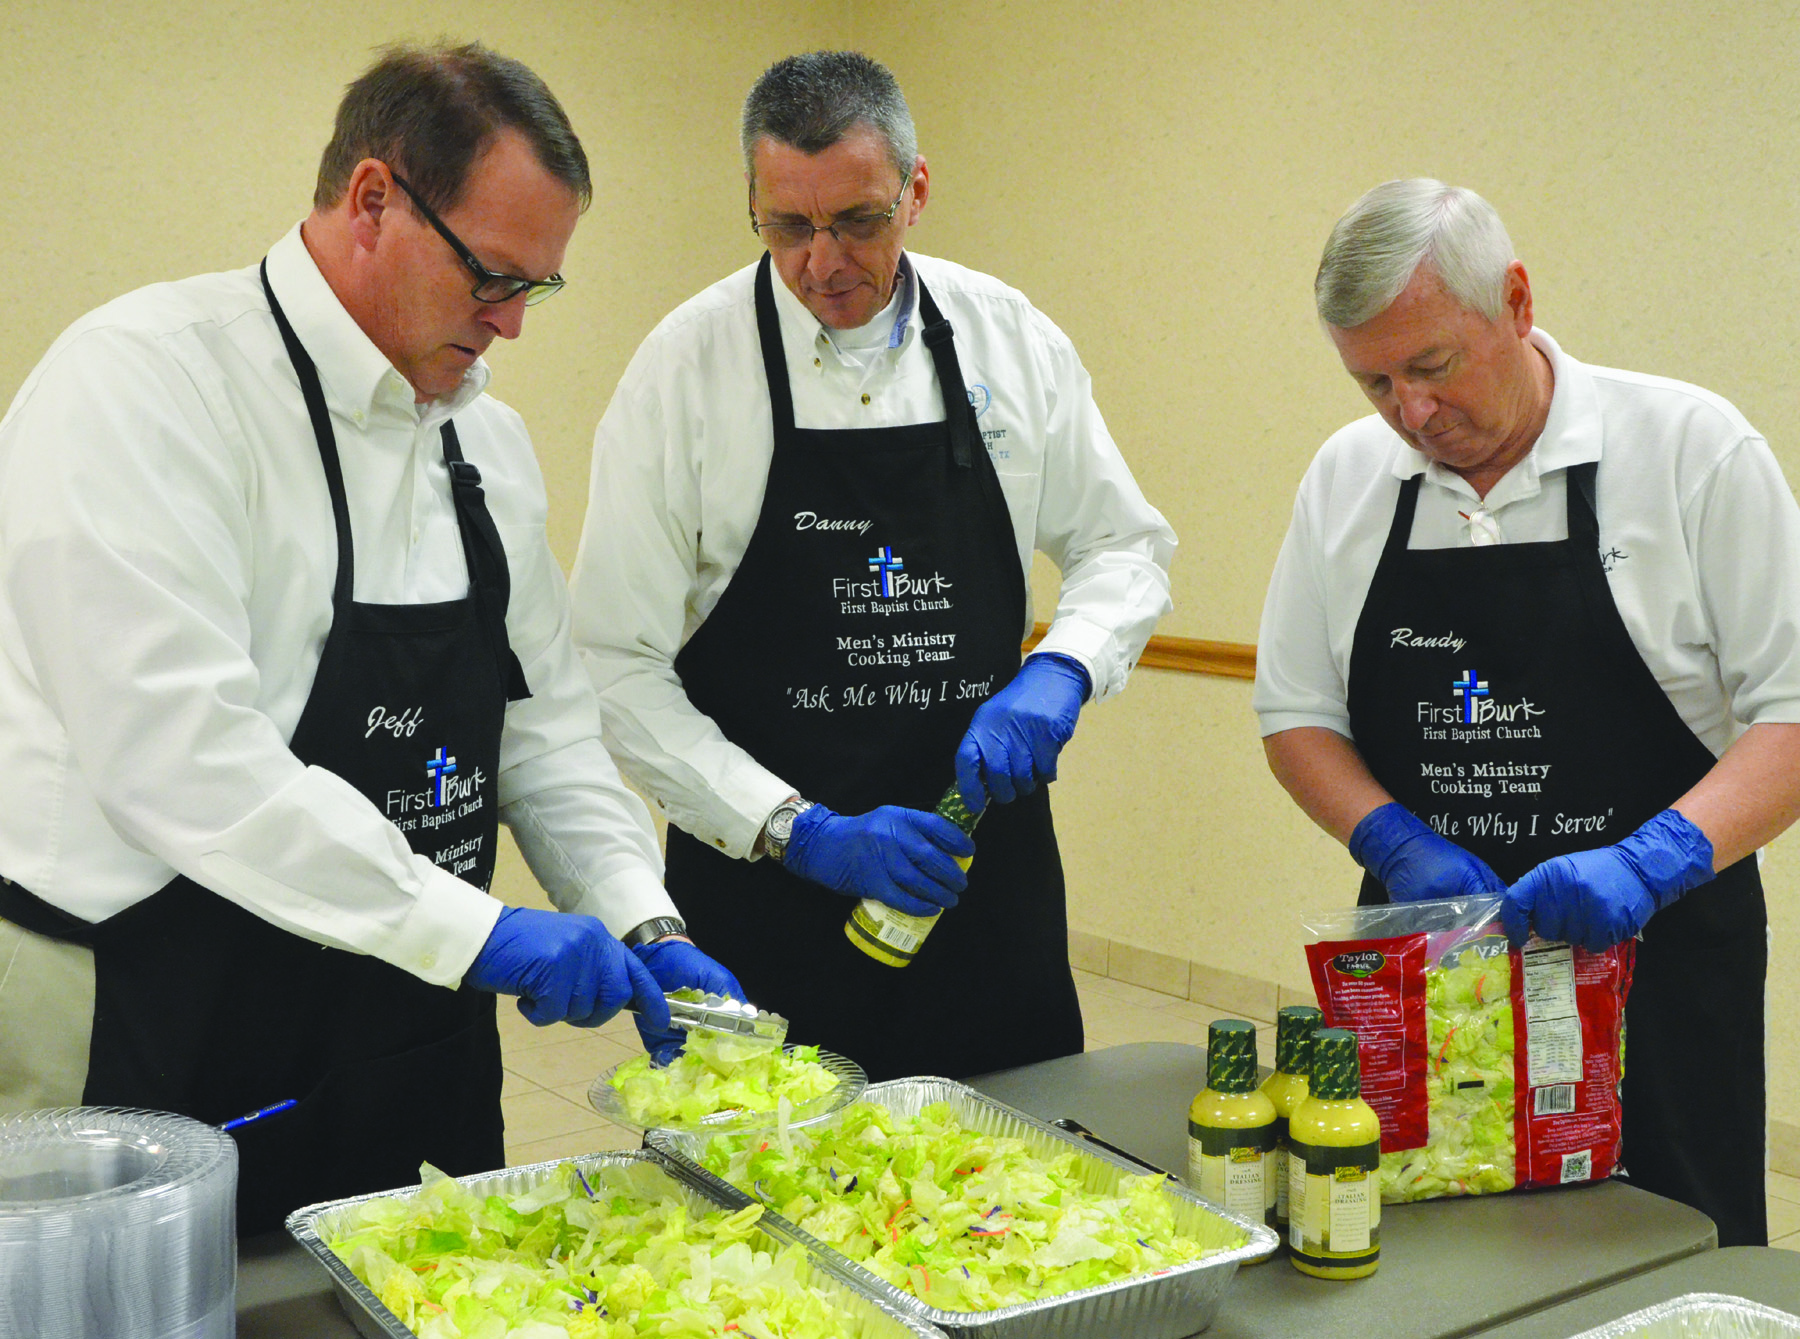 Men's Ministry Cooking Team